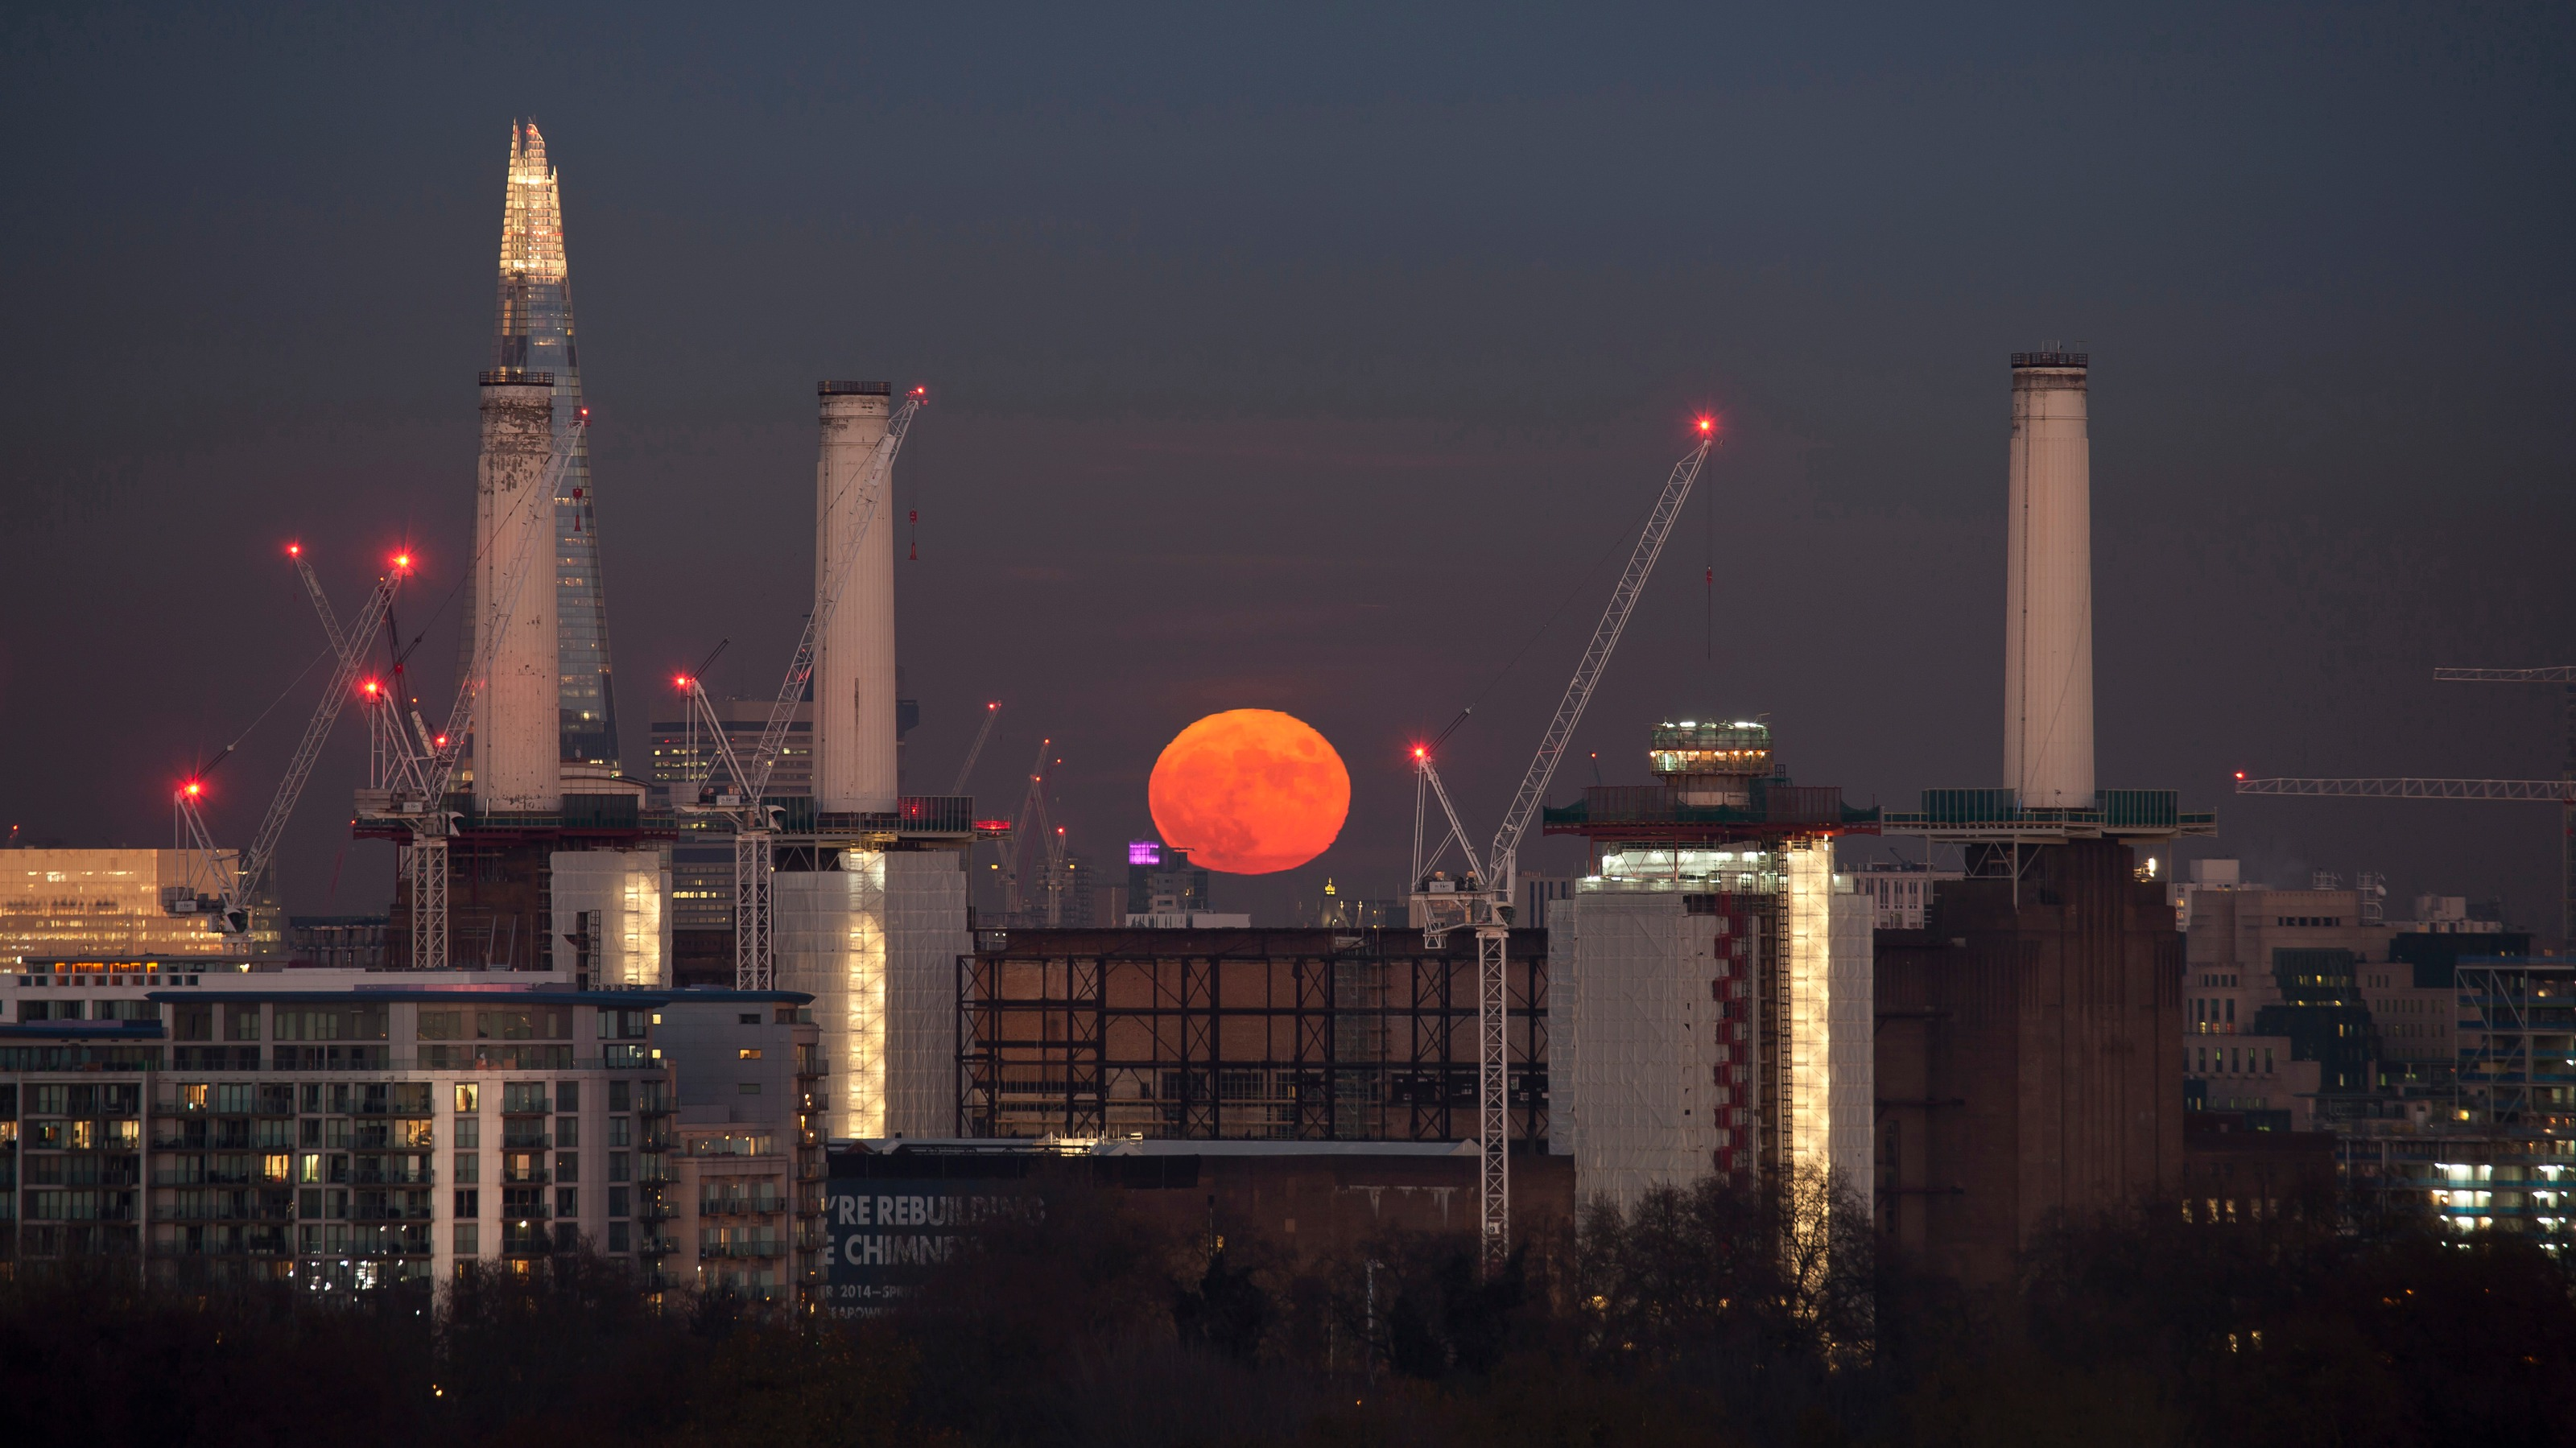 A stunning look at London from the capital's rooftops, including a blood red full moon